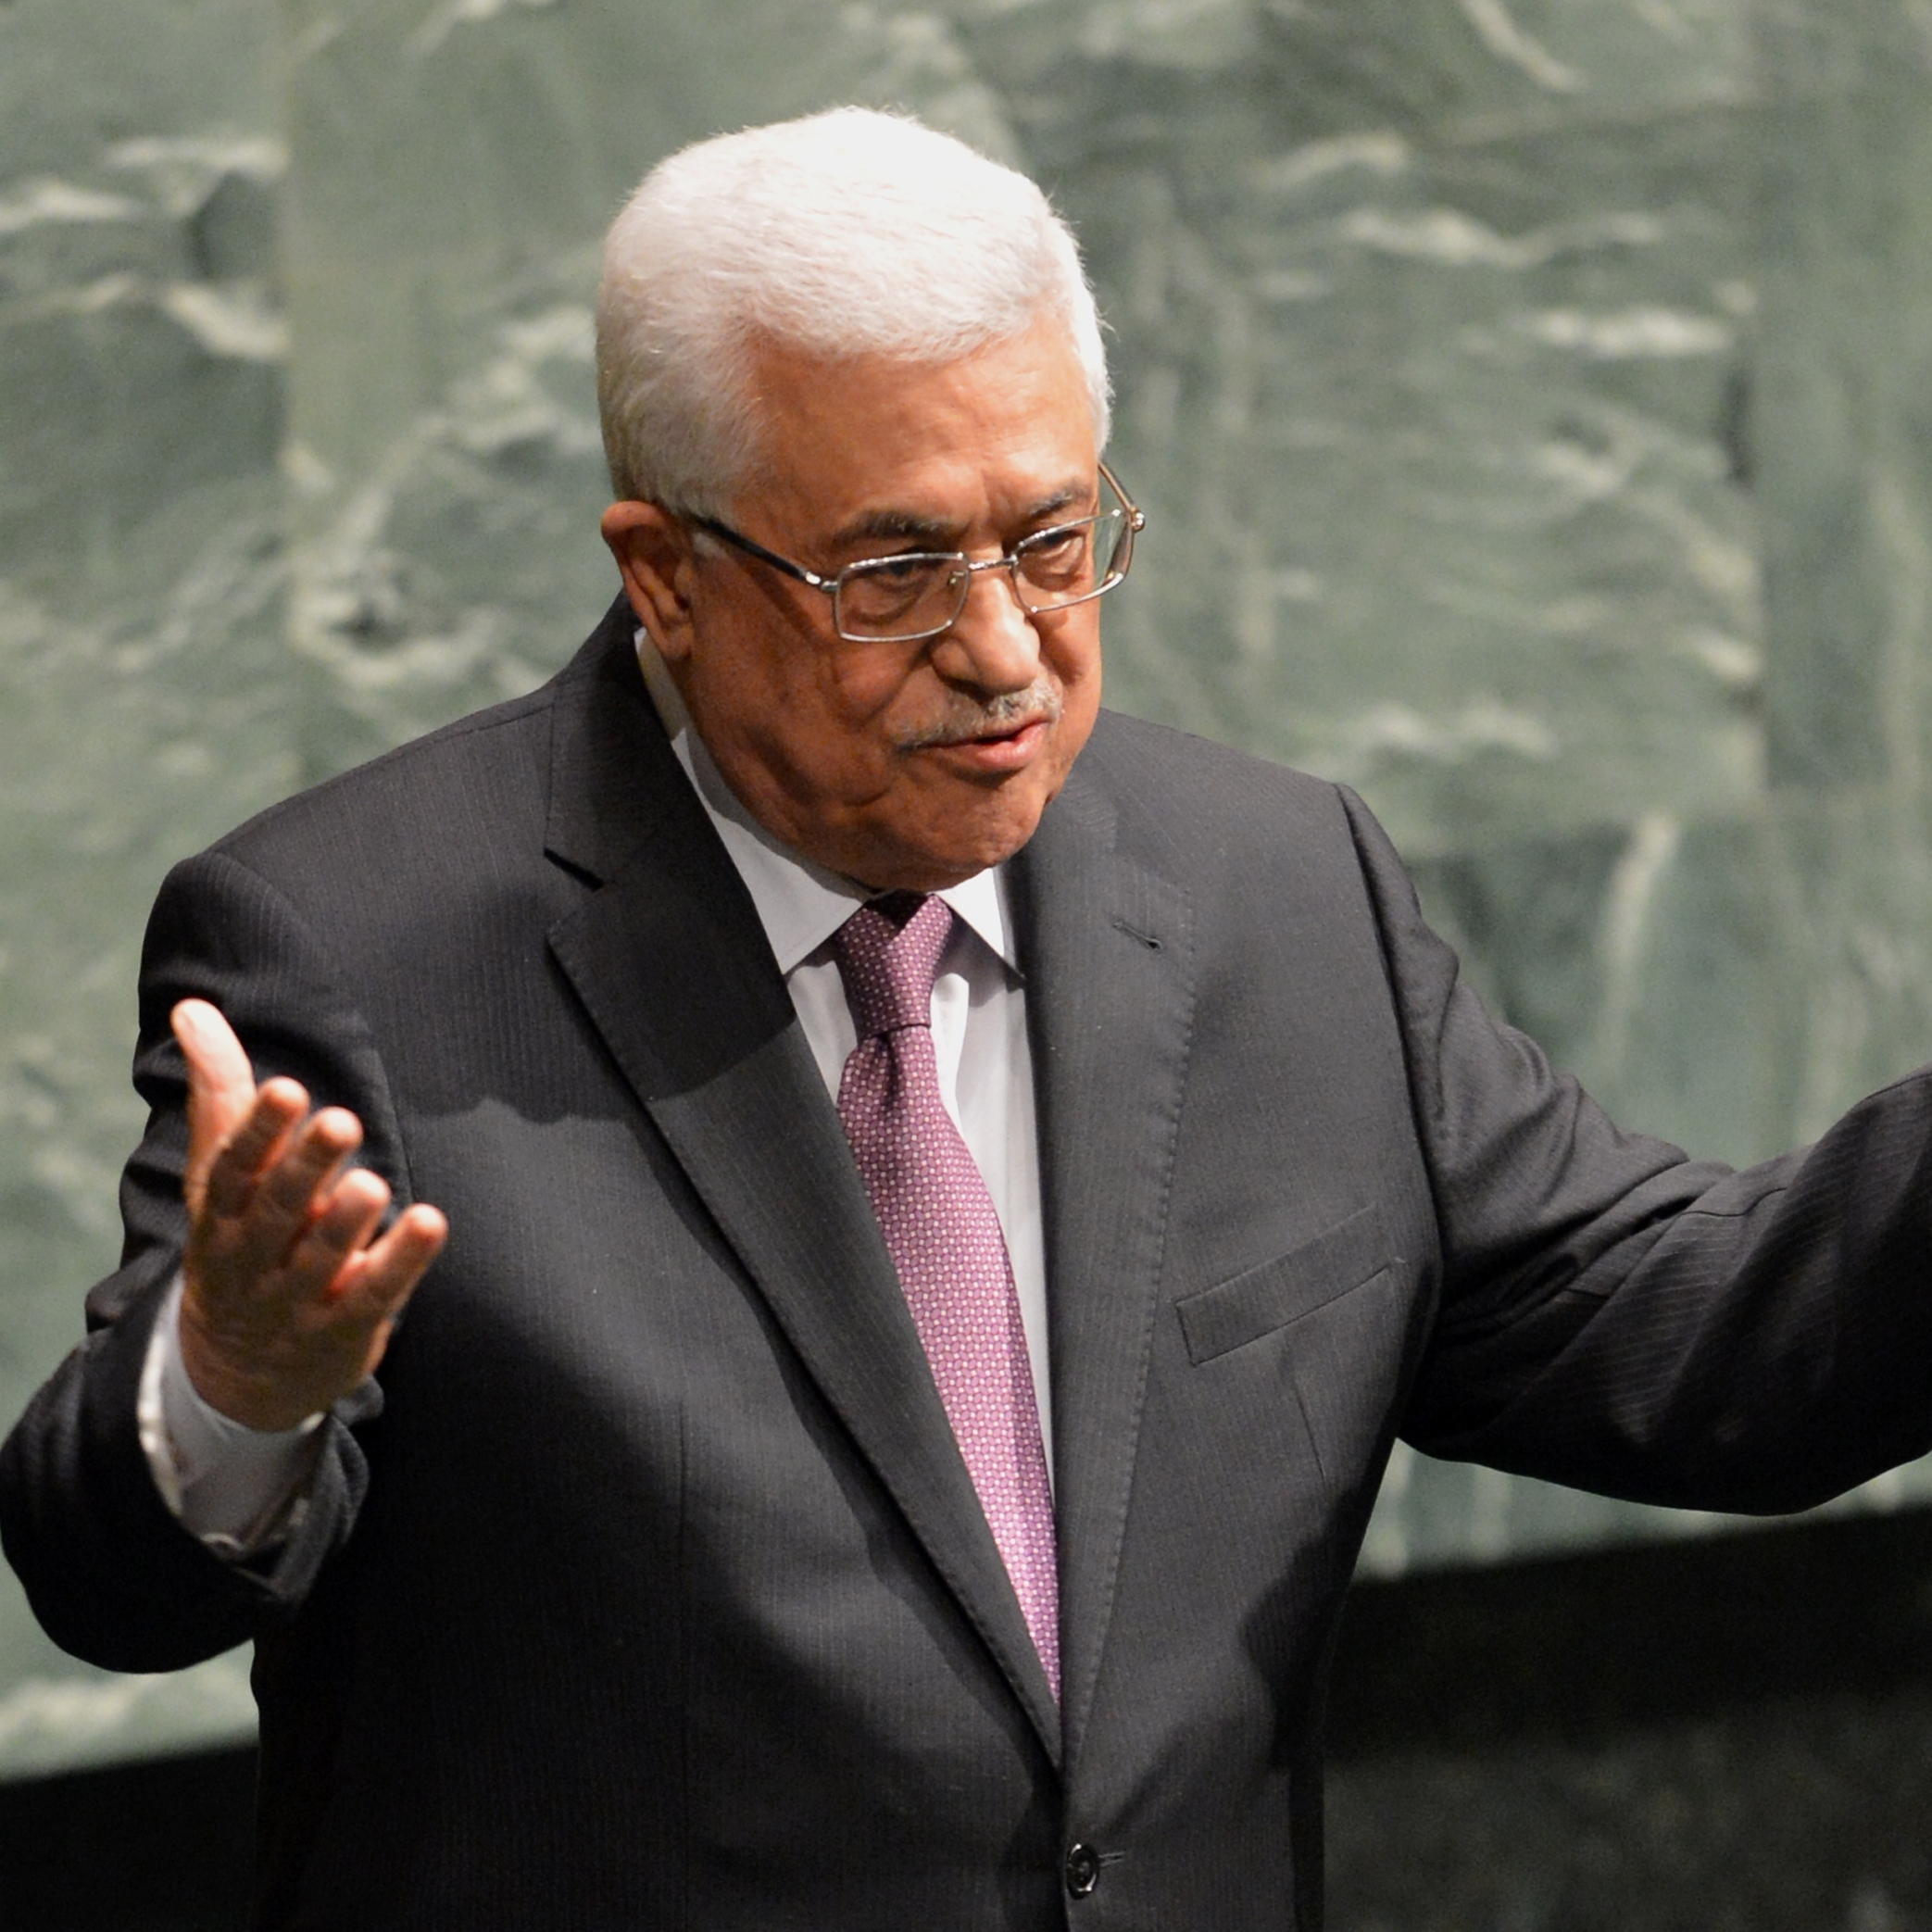 Palestinian Authority President Mahmoud Abbas after he spoke to the United Nations General Assembly.